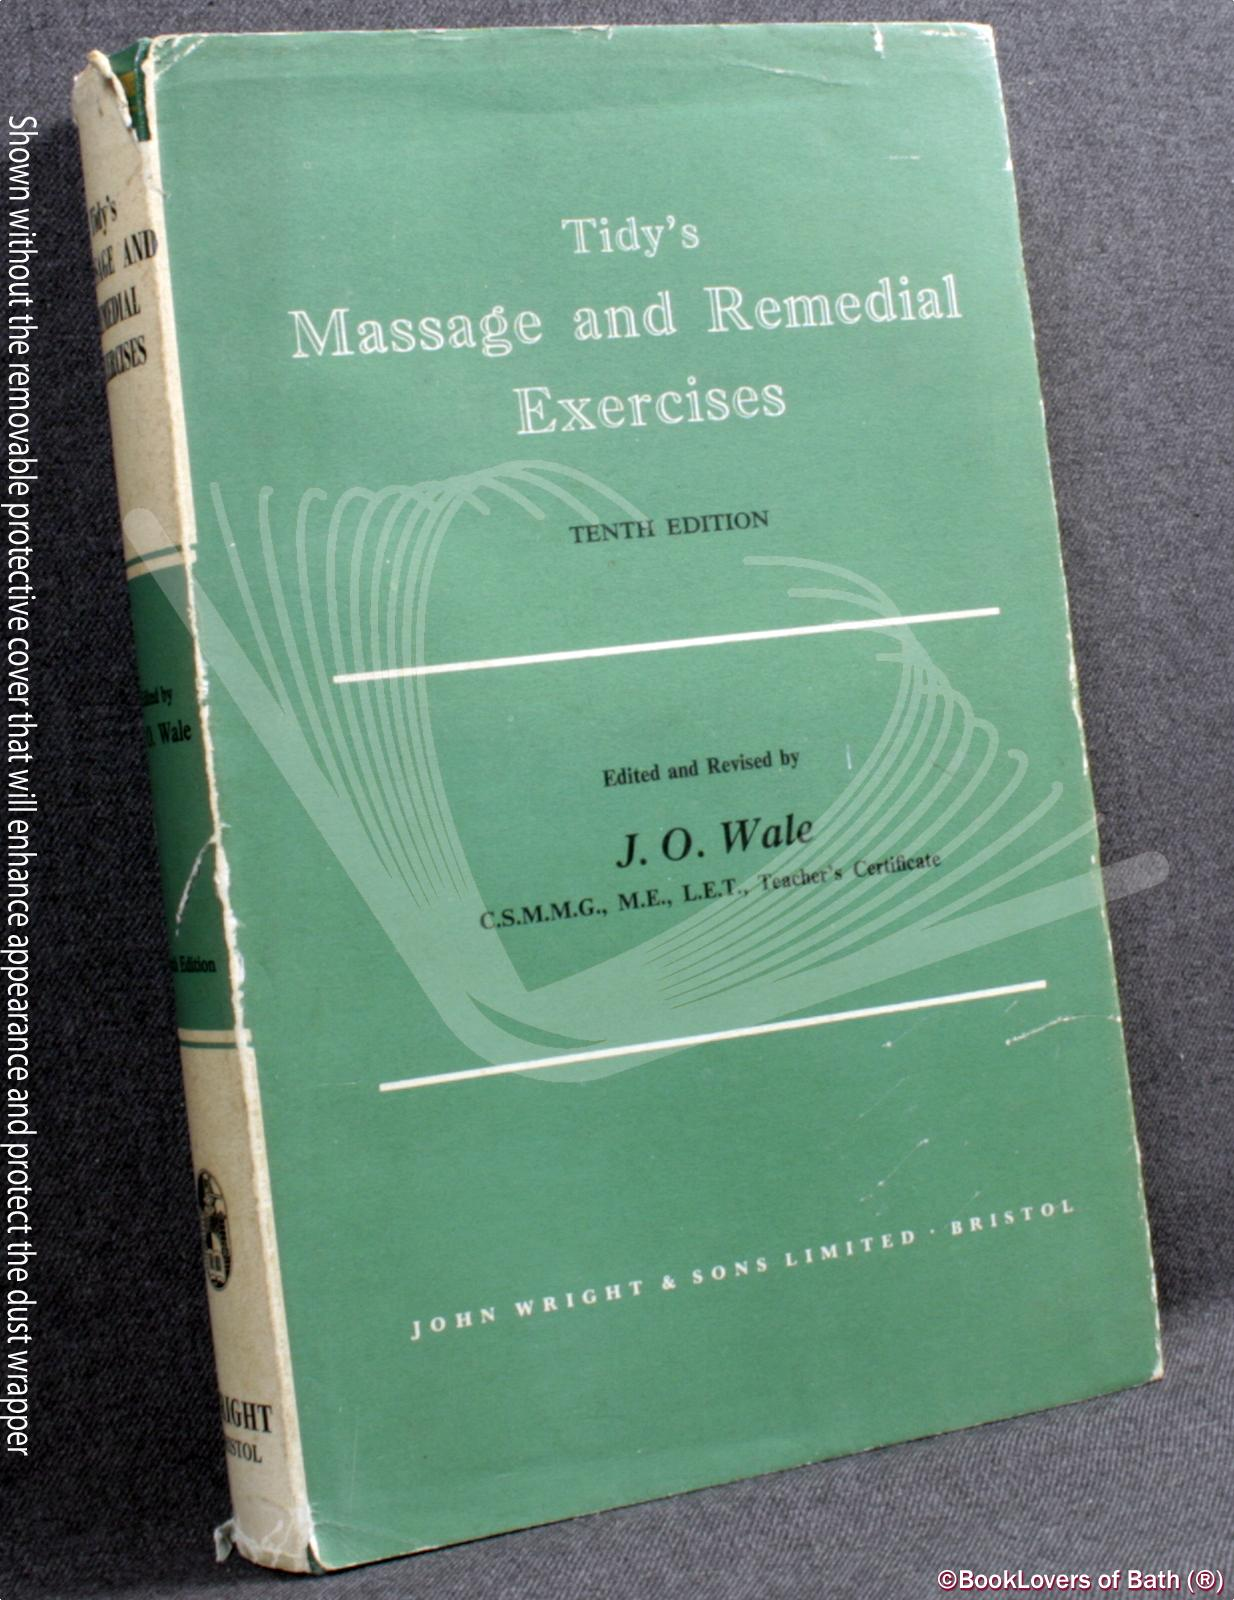 Tidy's Massage and Remedial Exercises in Medical and Surgical Conditions - Edited by J. O. [Jocelyn Olga] Wale